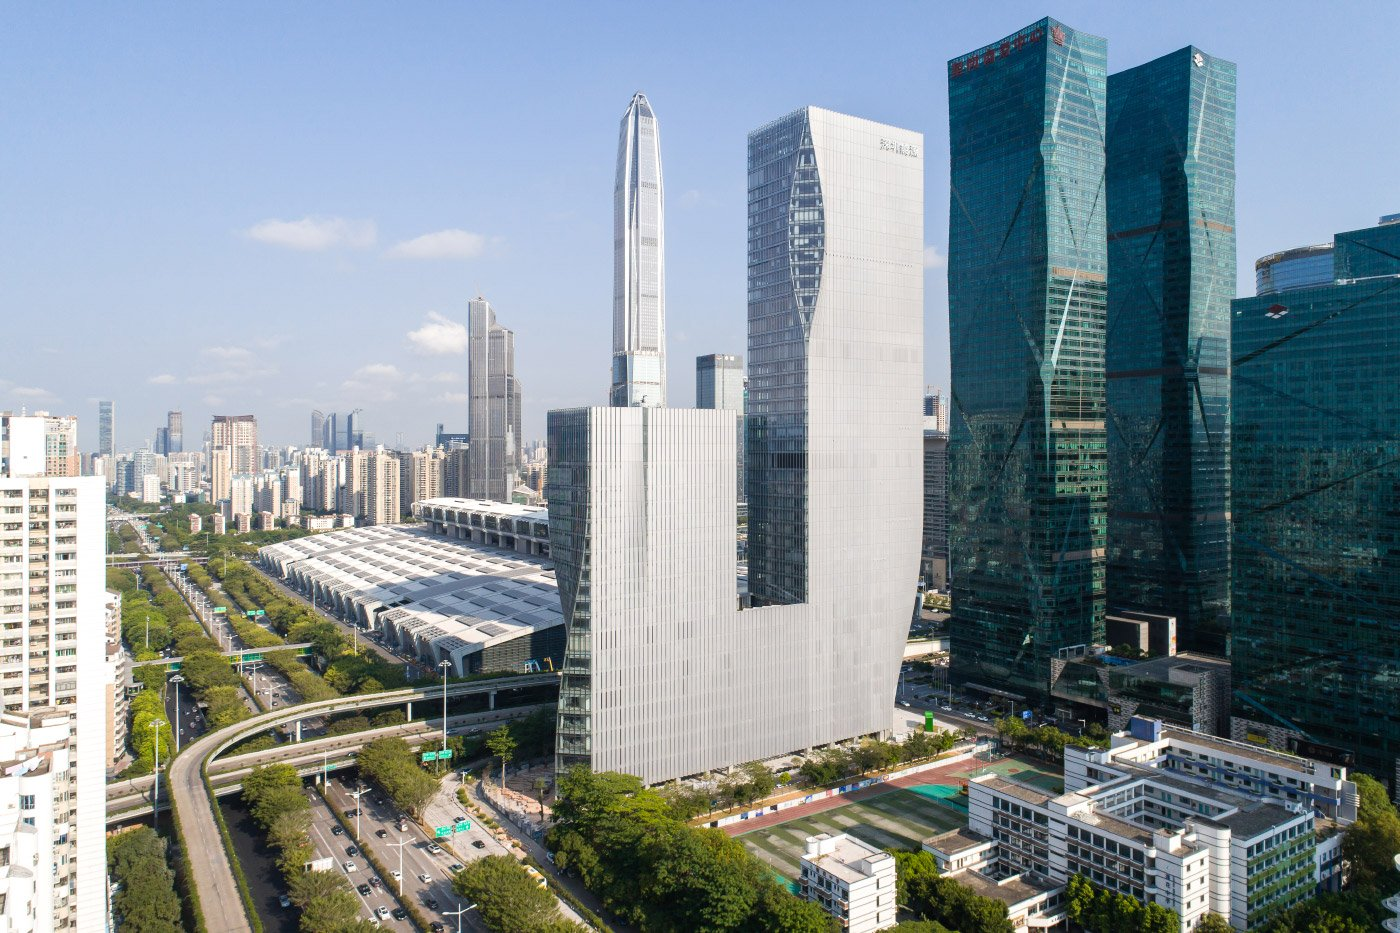 08_BIG_SEM_Shenzhen-Energy-Mansion_Image-by-Chao-Zhang-edit 2